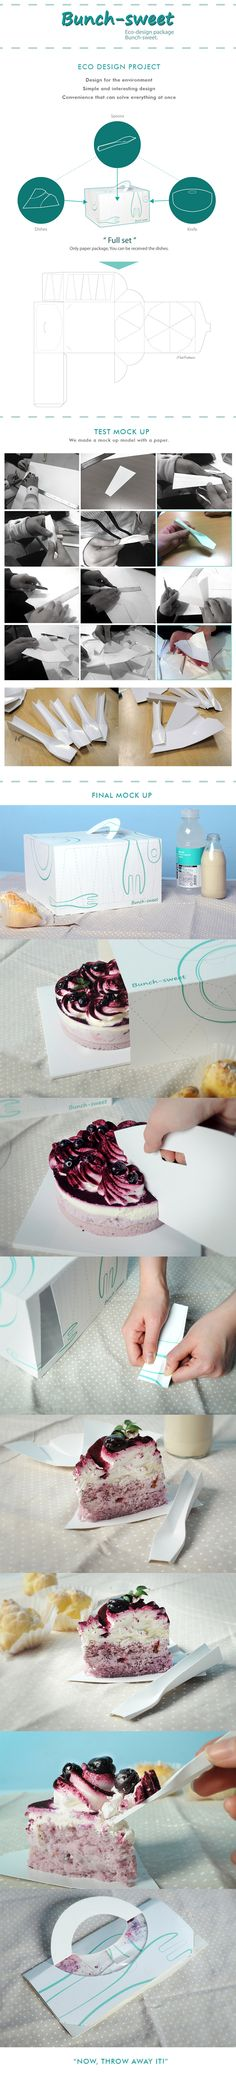 Bunch-Sweet, All In One Cake Package. by JK-shay Ryu, via Behance